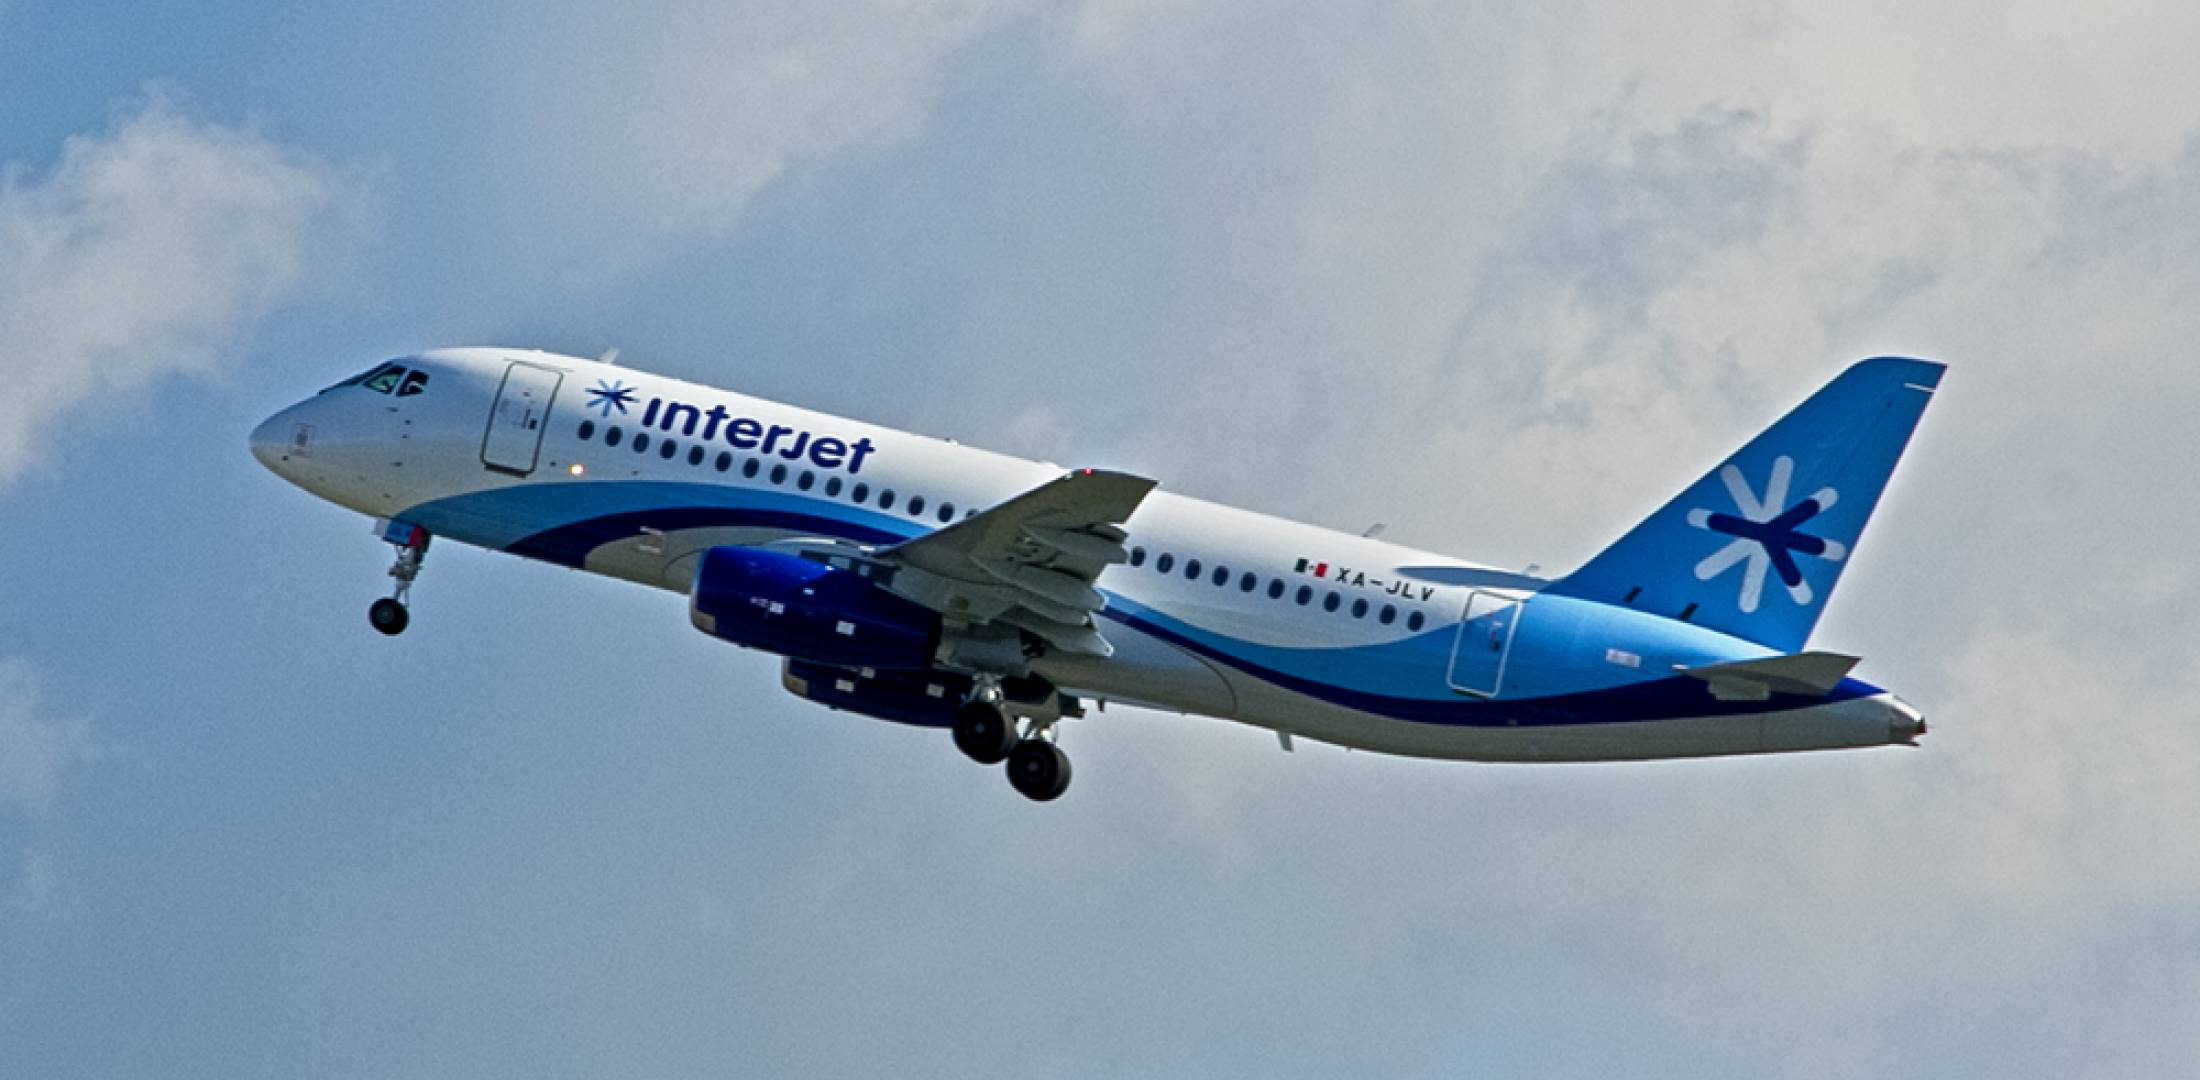 Superjet Deals With Production Issues